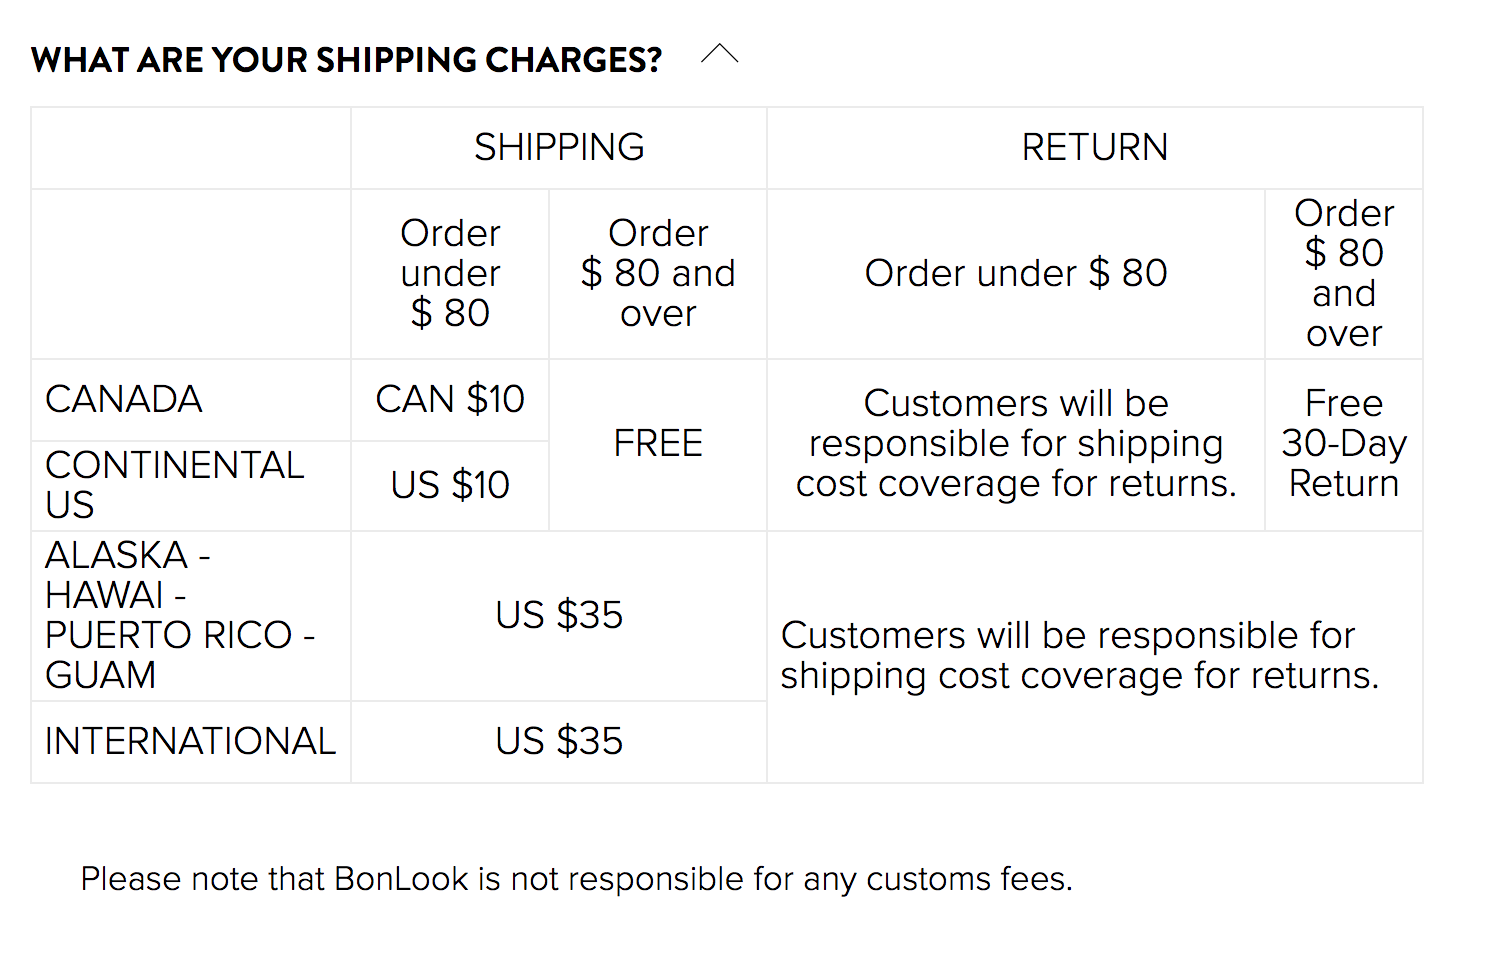 BonLook: What are your shipping charges?